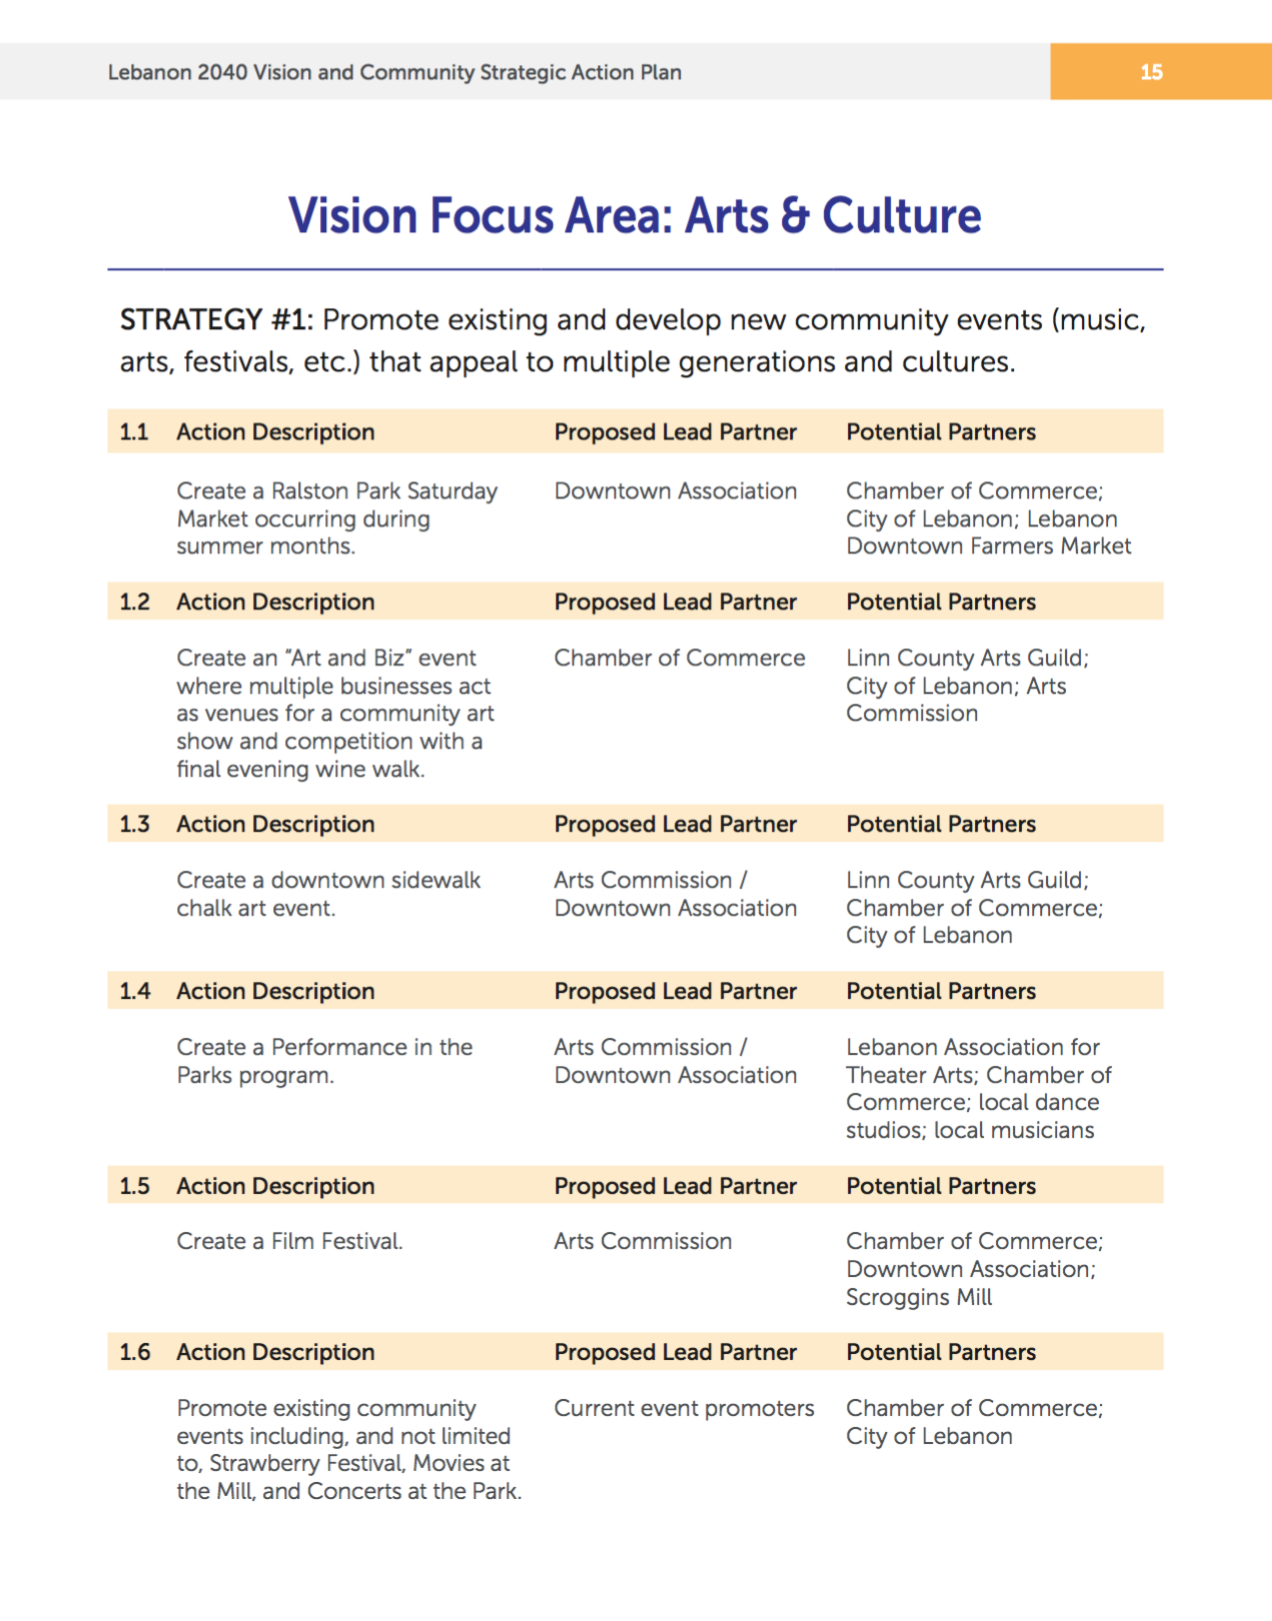 Sample page from the City of Lebanon Strategic Action Plan